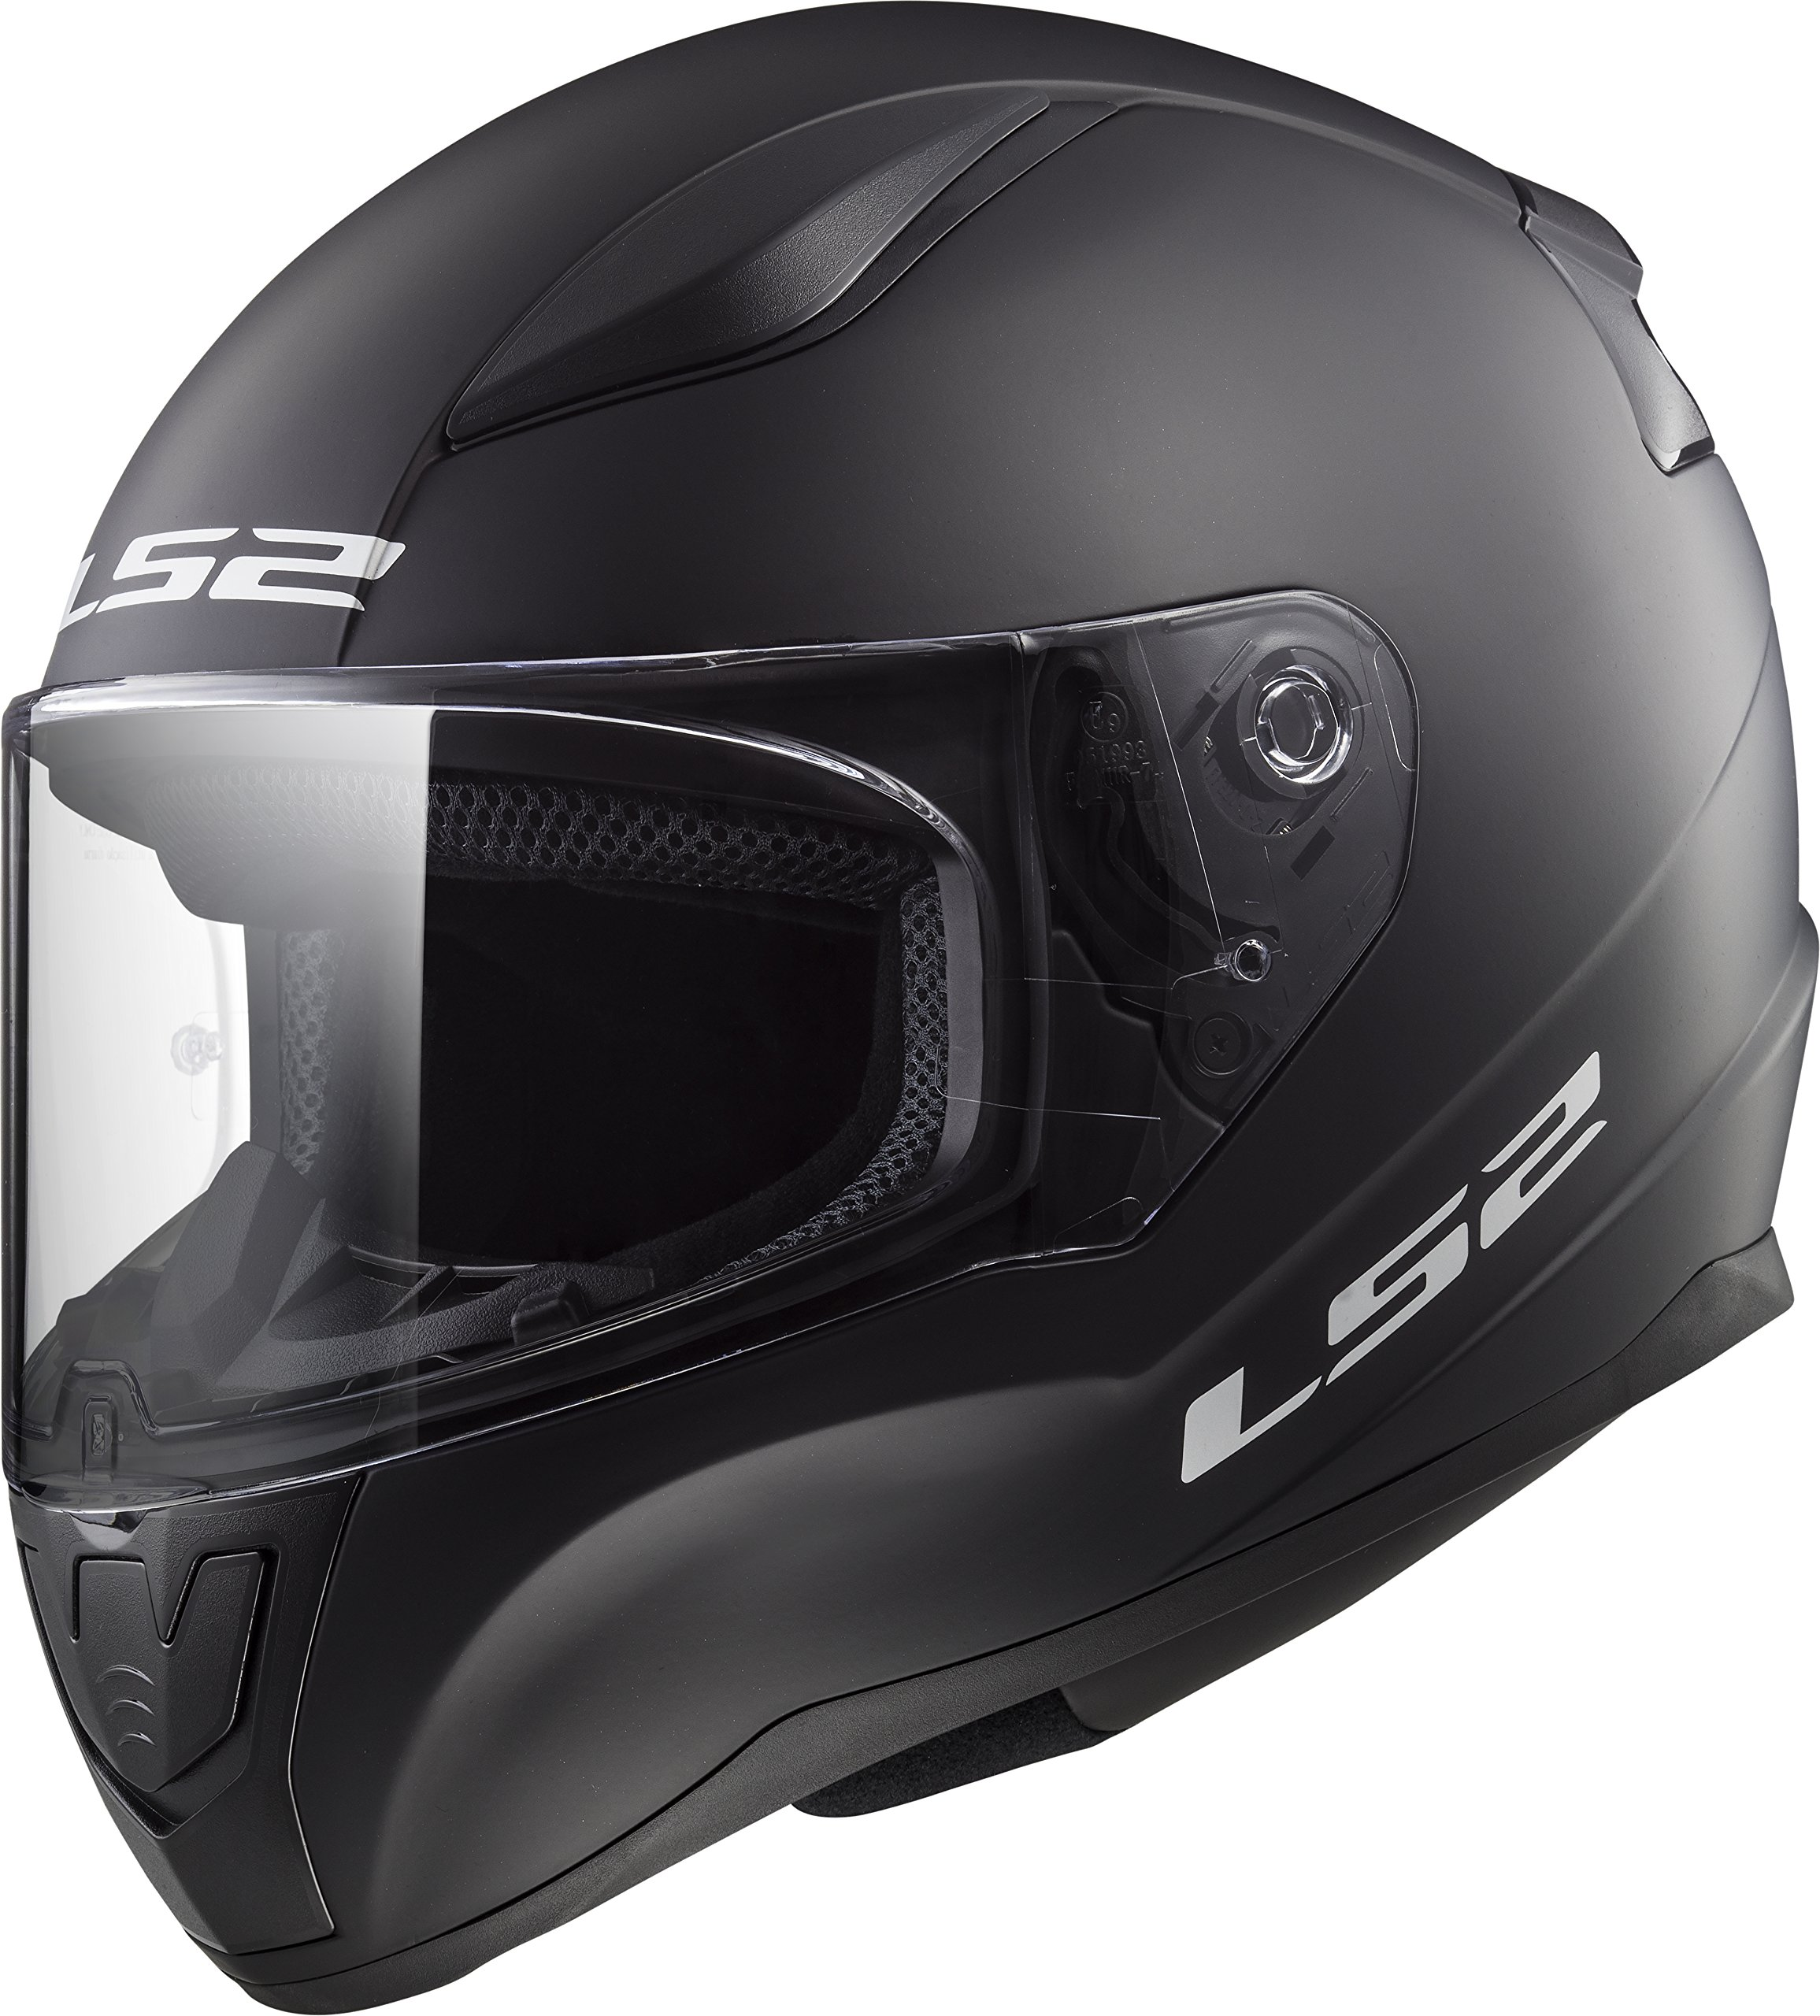 LS2 Helmets Rapid Solid Matte Black Unisex-Adult Full-Face-Helmet-Style Motorcycle Helmet (Matte Black, Small) by LS2 Helmets